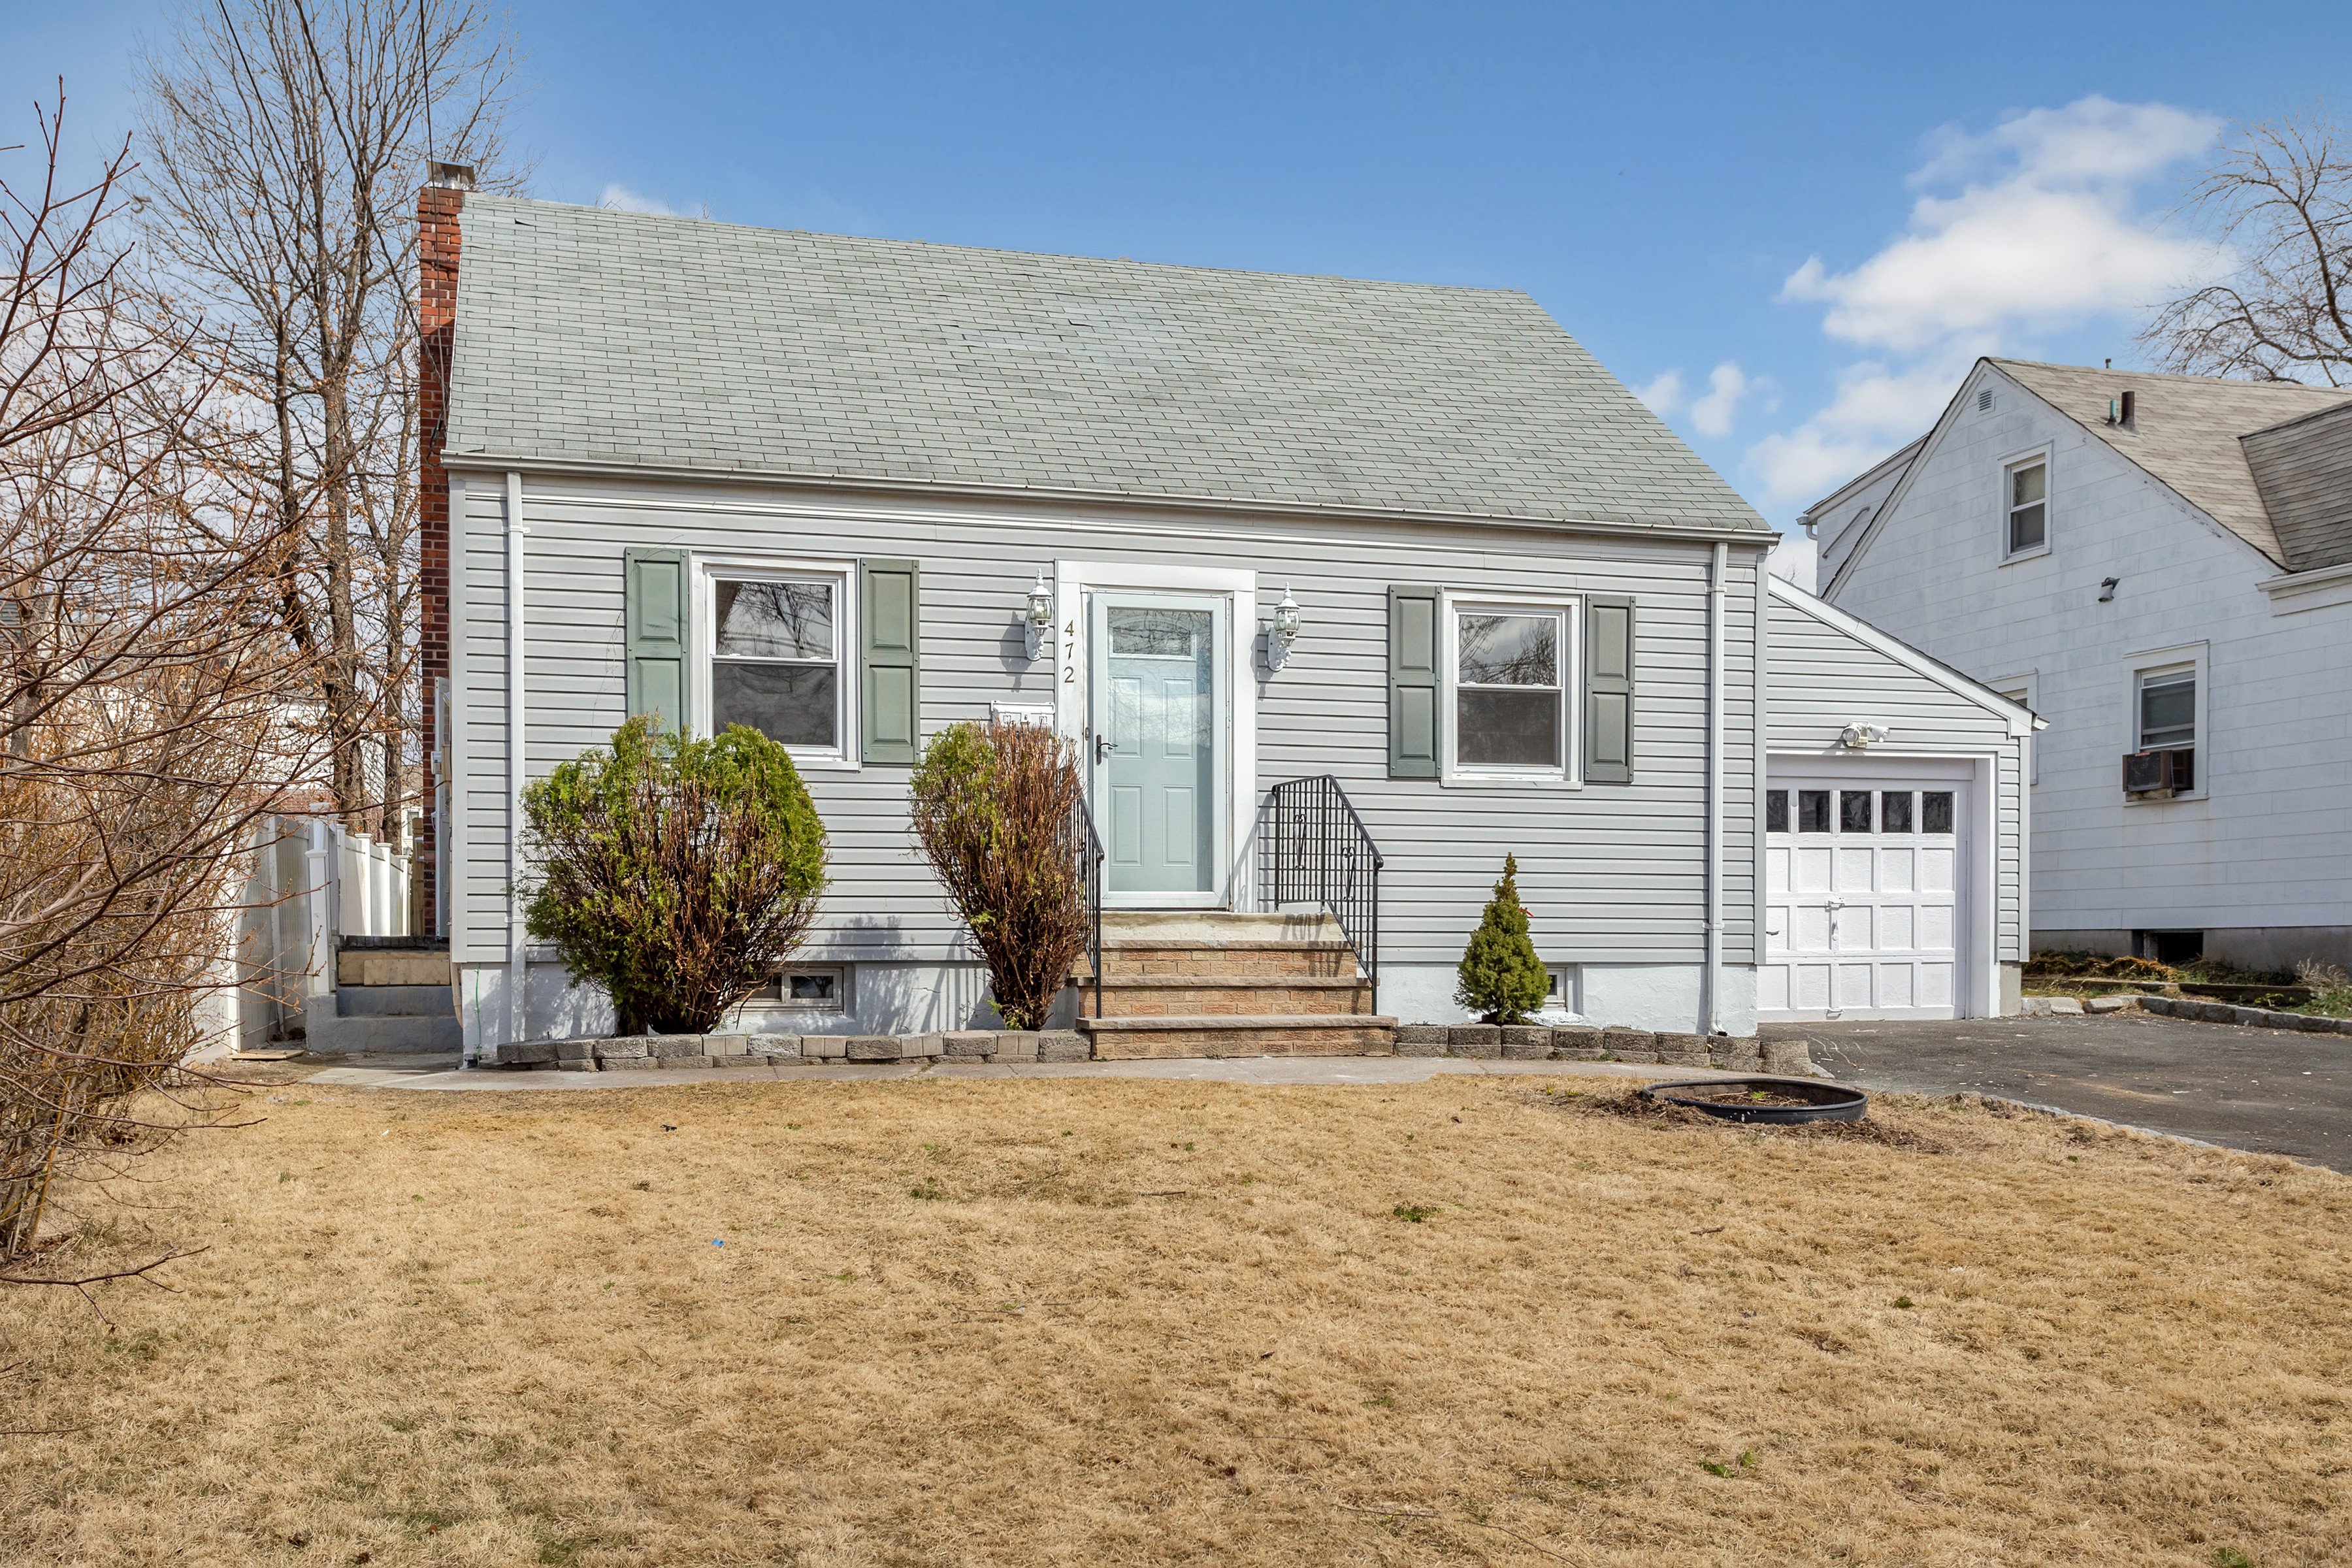 HOT REO – 472 SIMONS AVE. HACKENSACK, NJ 07601 – $349,900